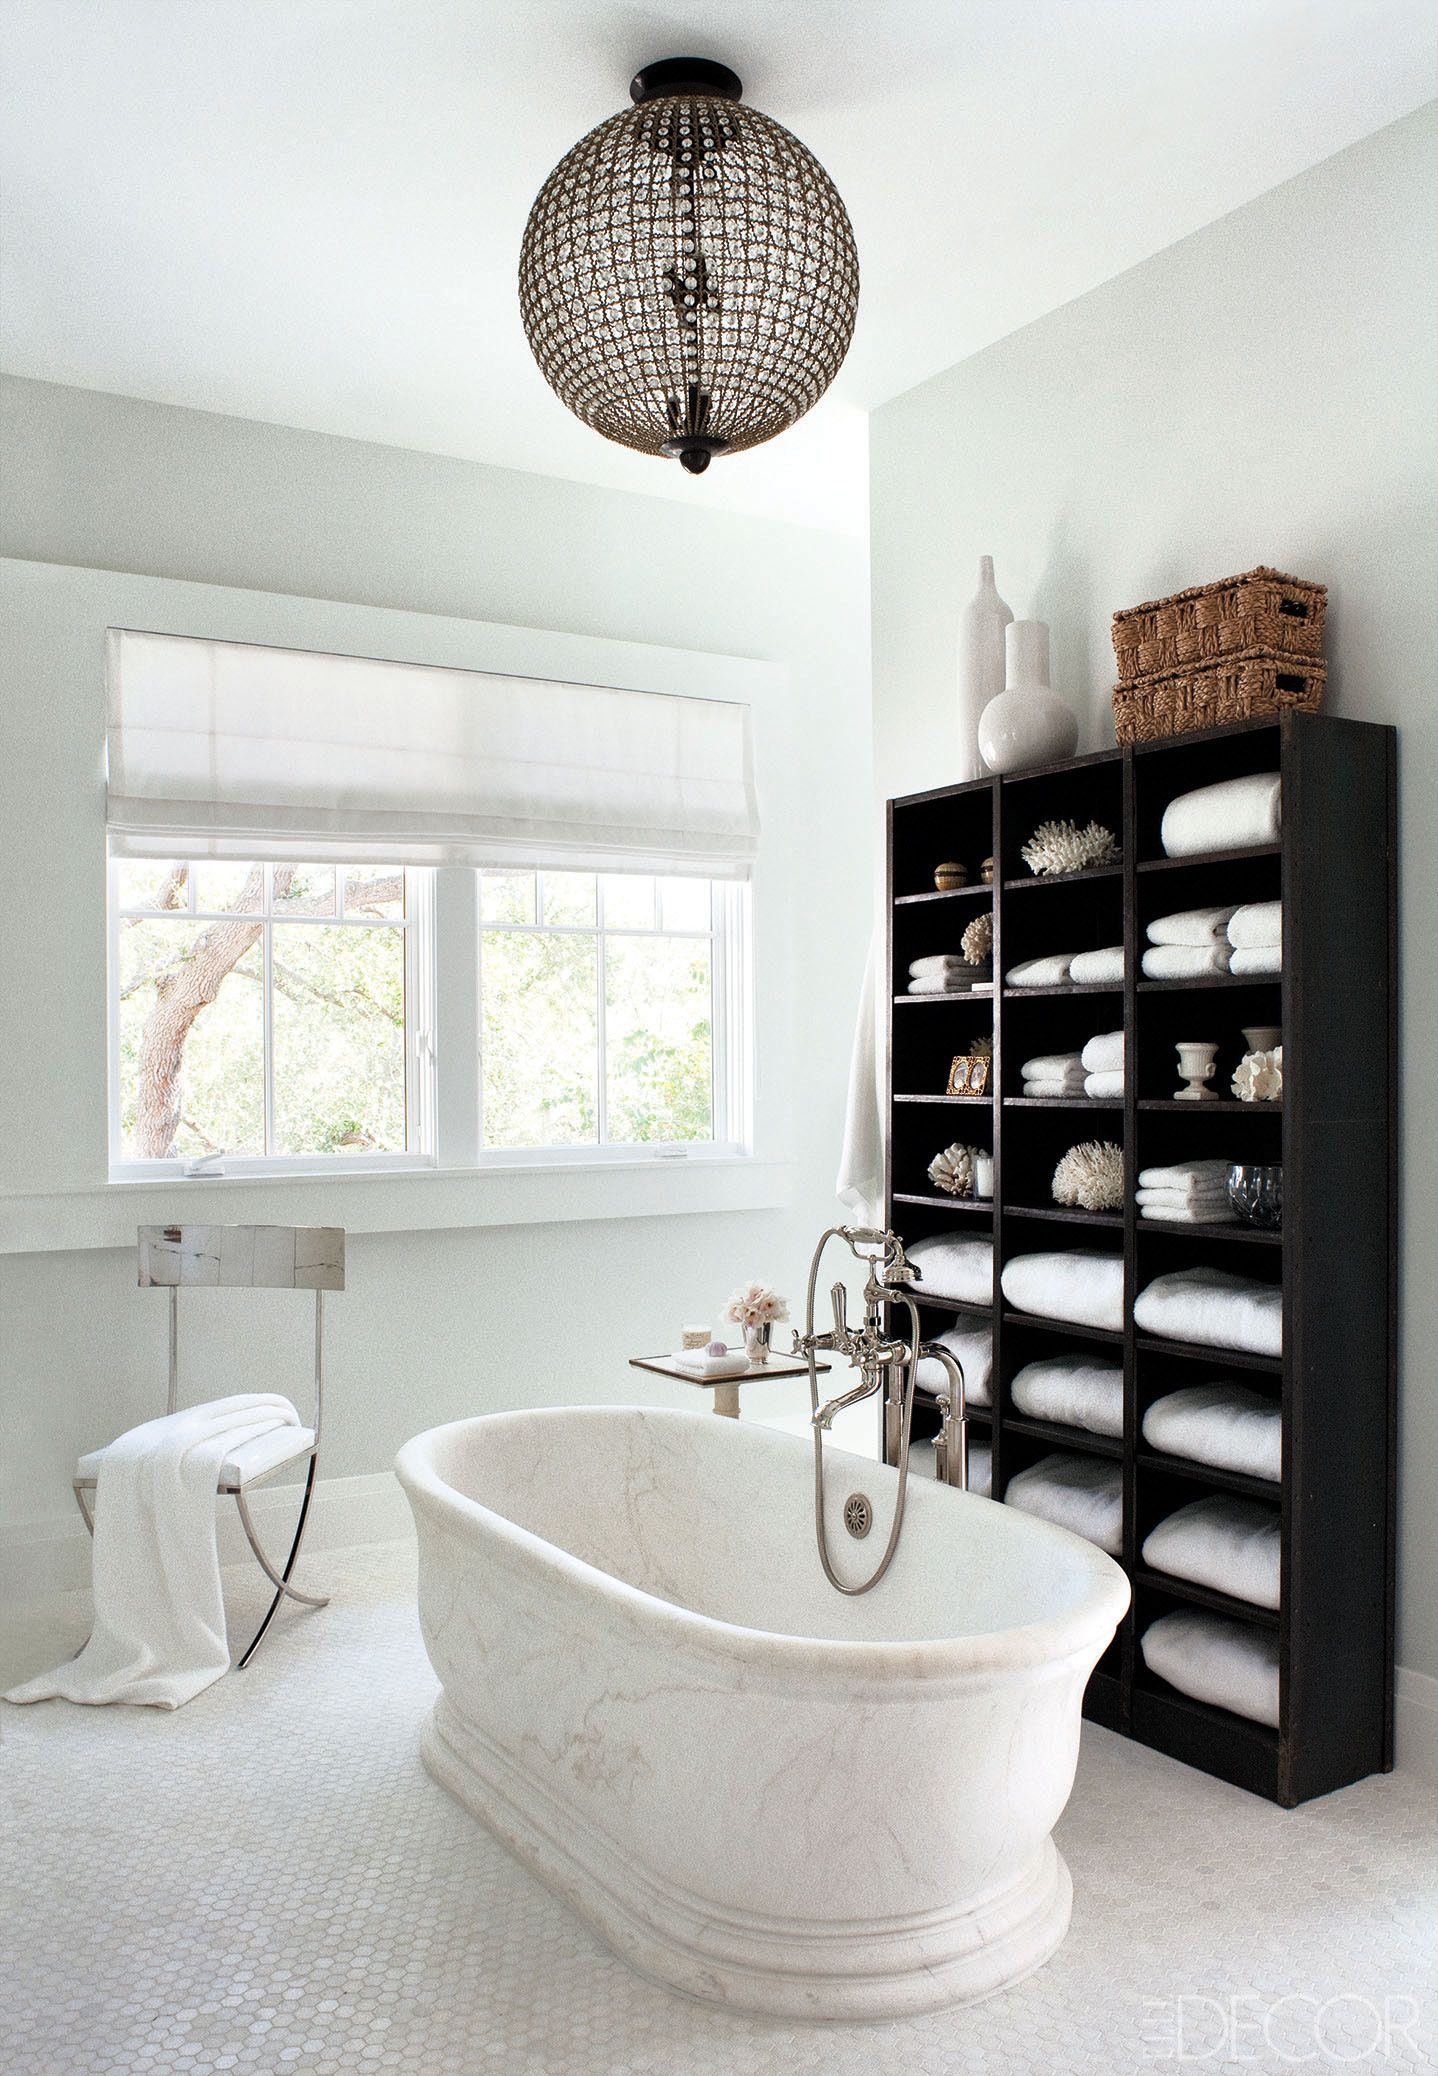 23 Best Bathroom Storage Ideas - Bathroom Organizers